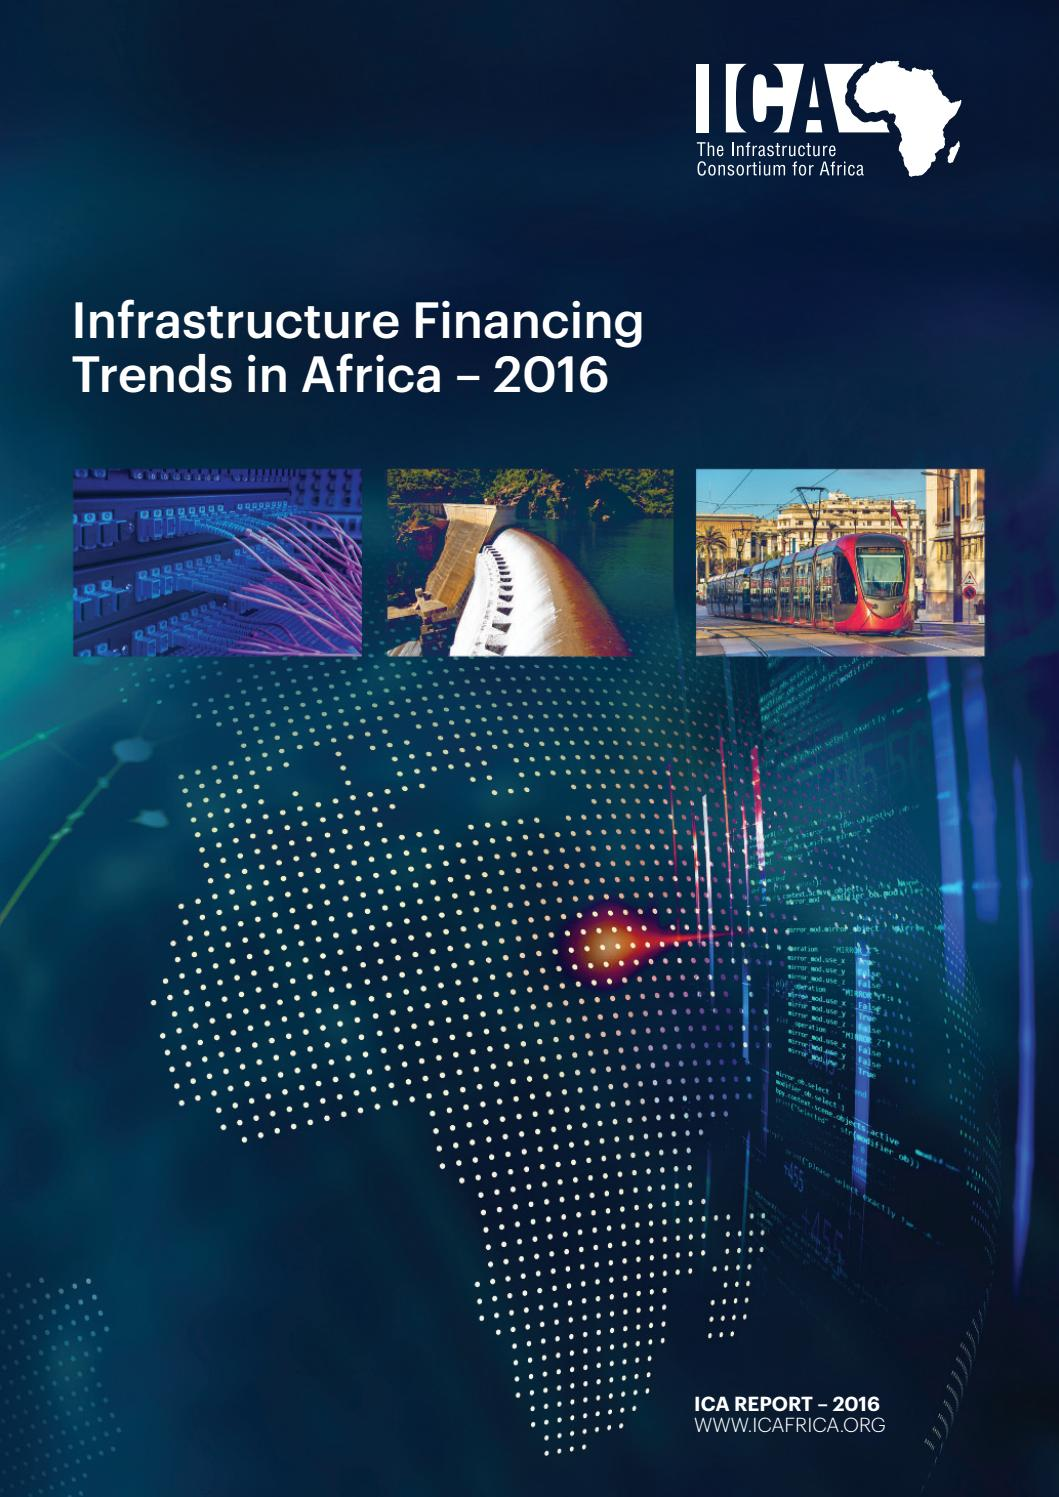 Infrastructure financing trends 2016 by Ilse Nunley - issuu